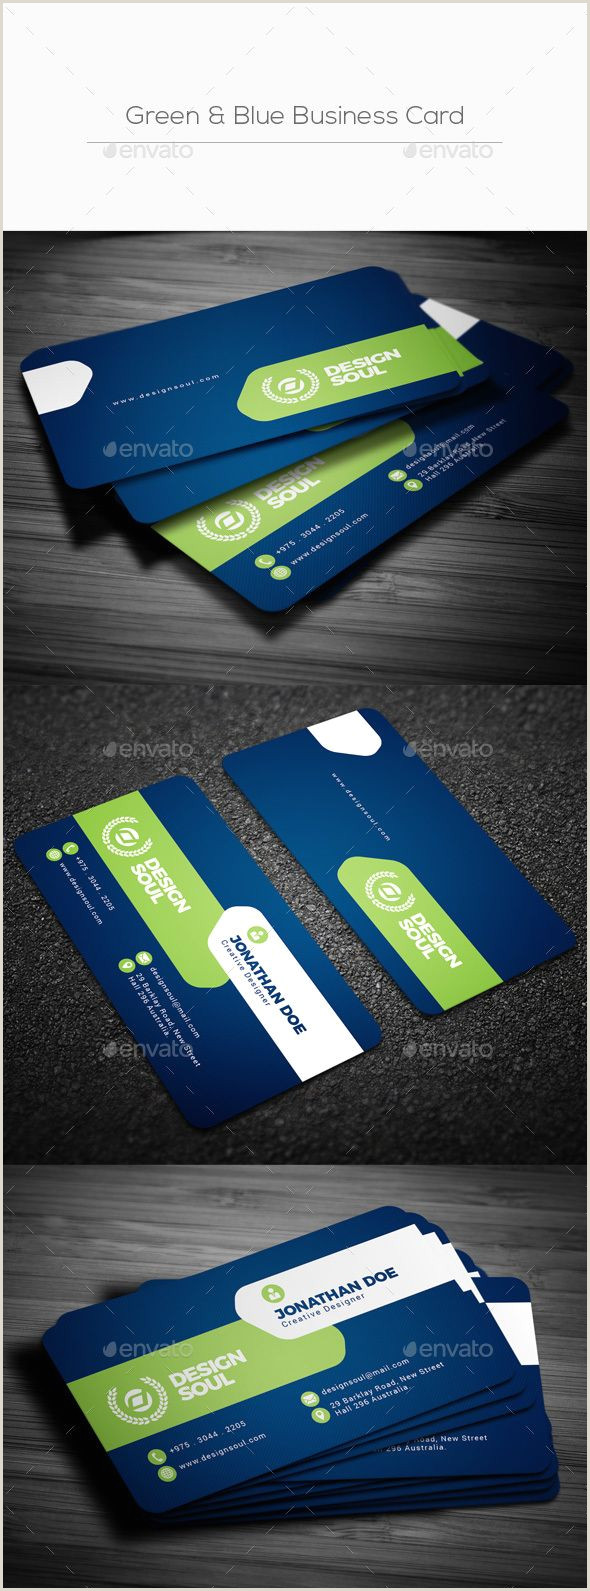 Vintage Business Cards Templates Free Green & Blue Business Card Corporate Business Cards